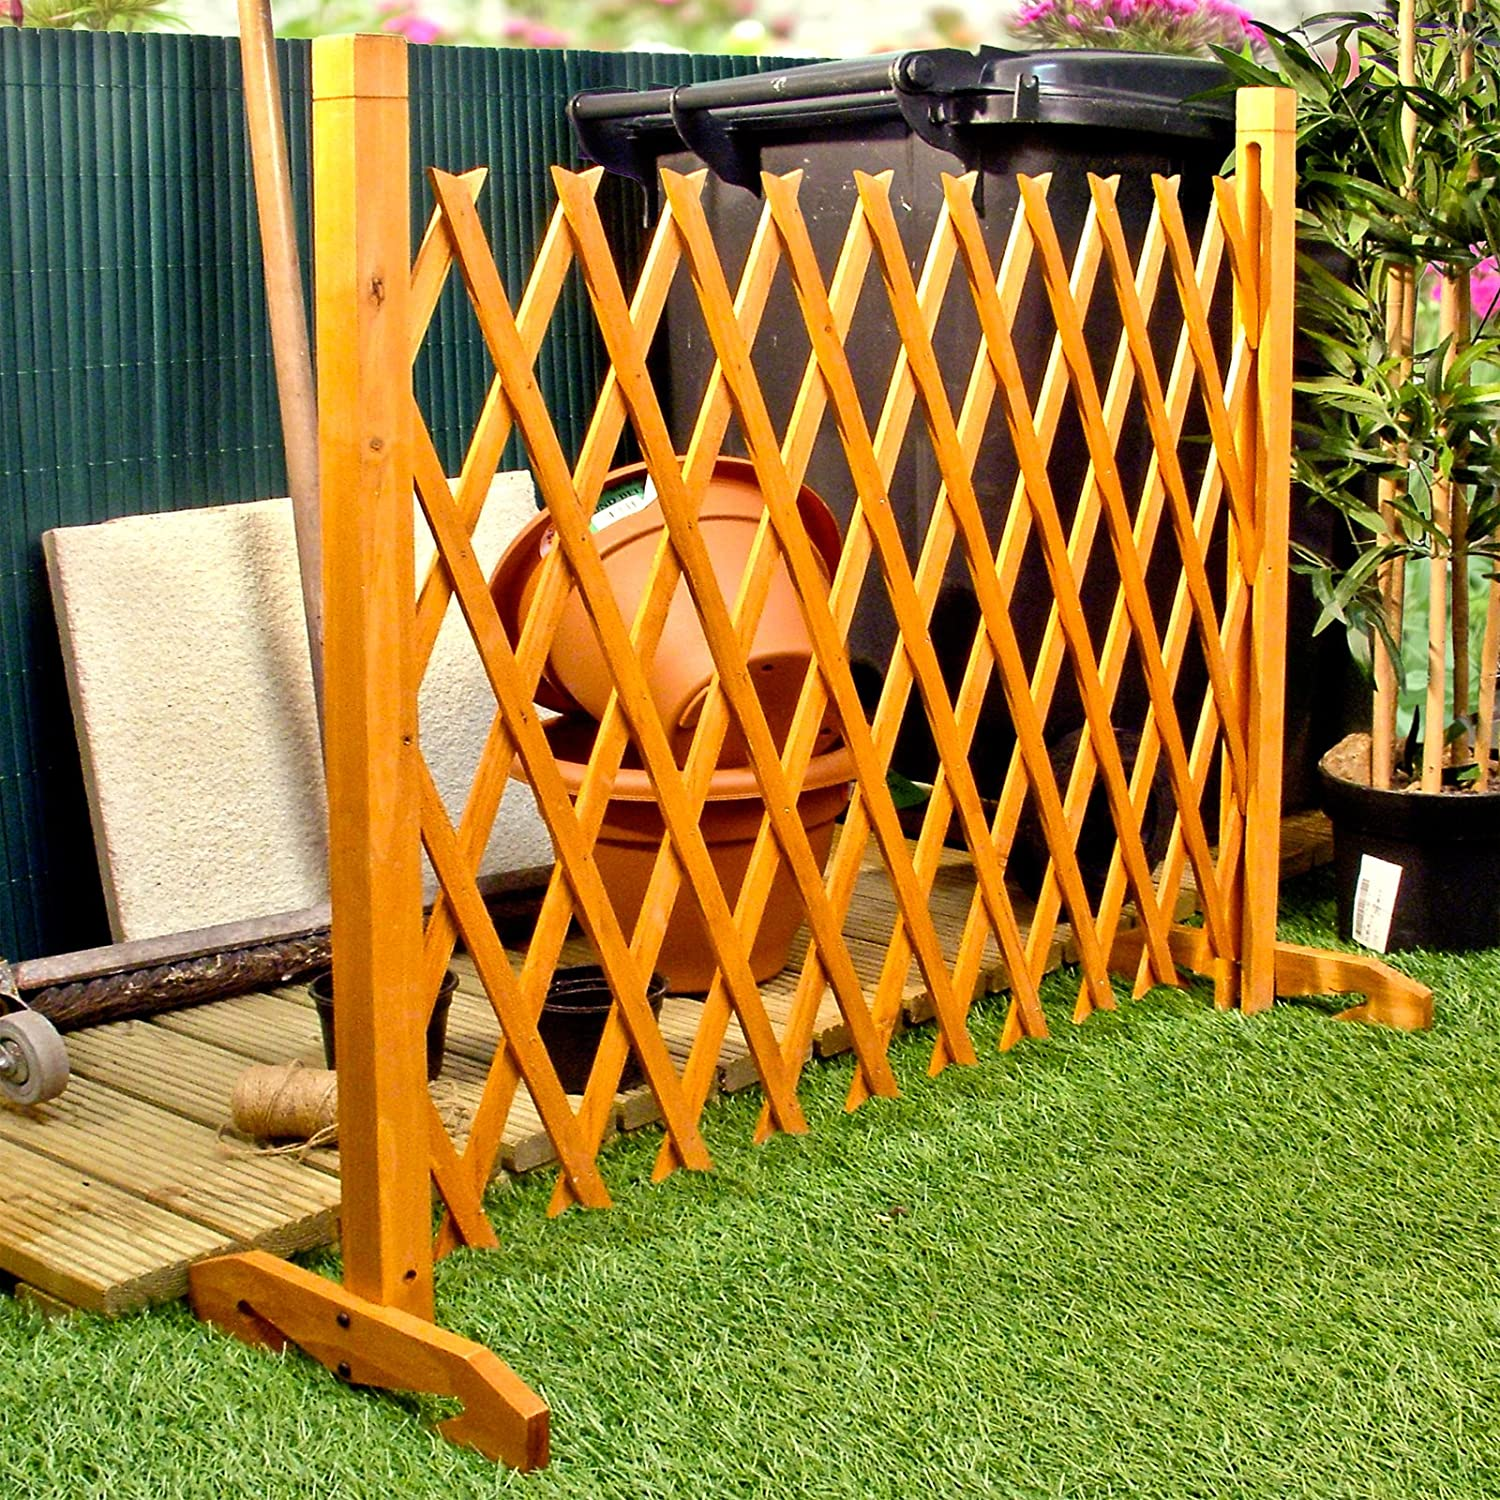 Expanding Fence Garden Screen Trellis Style Expands to 6'2